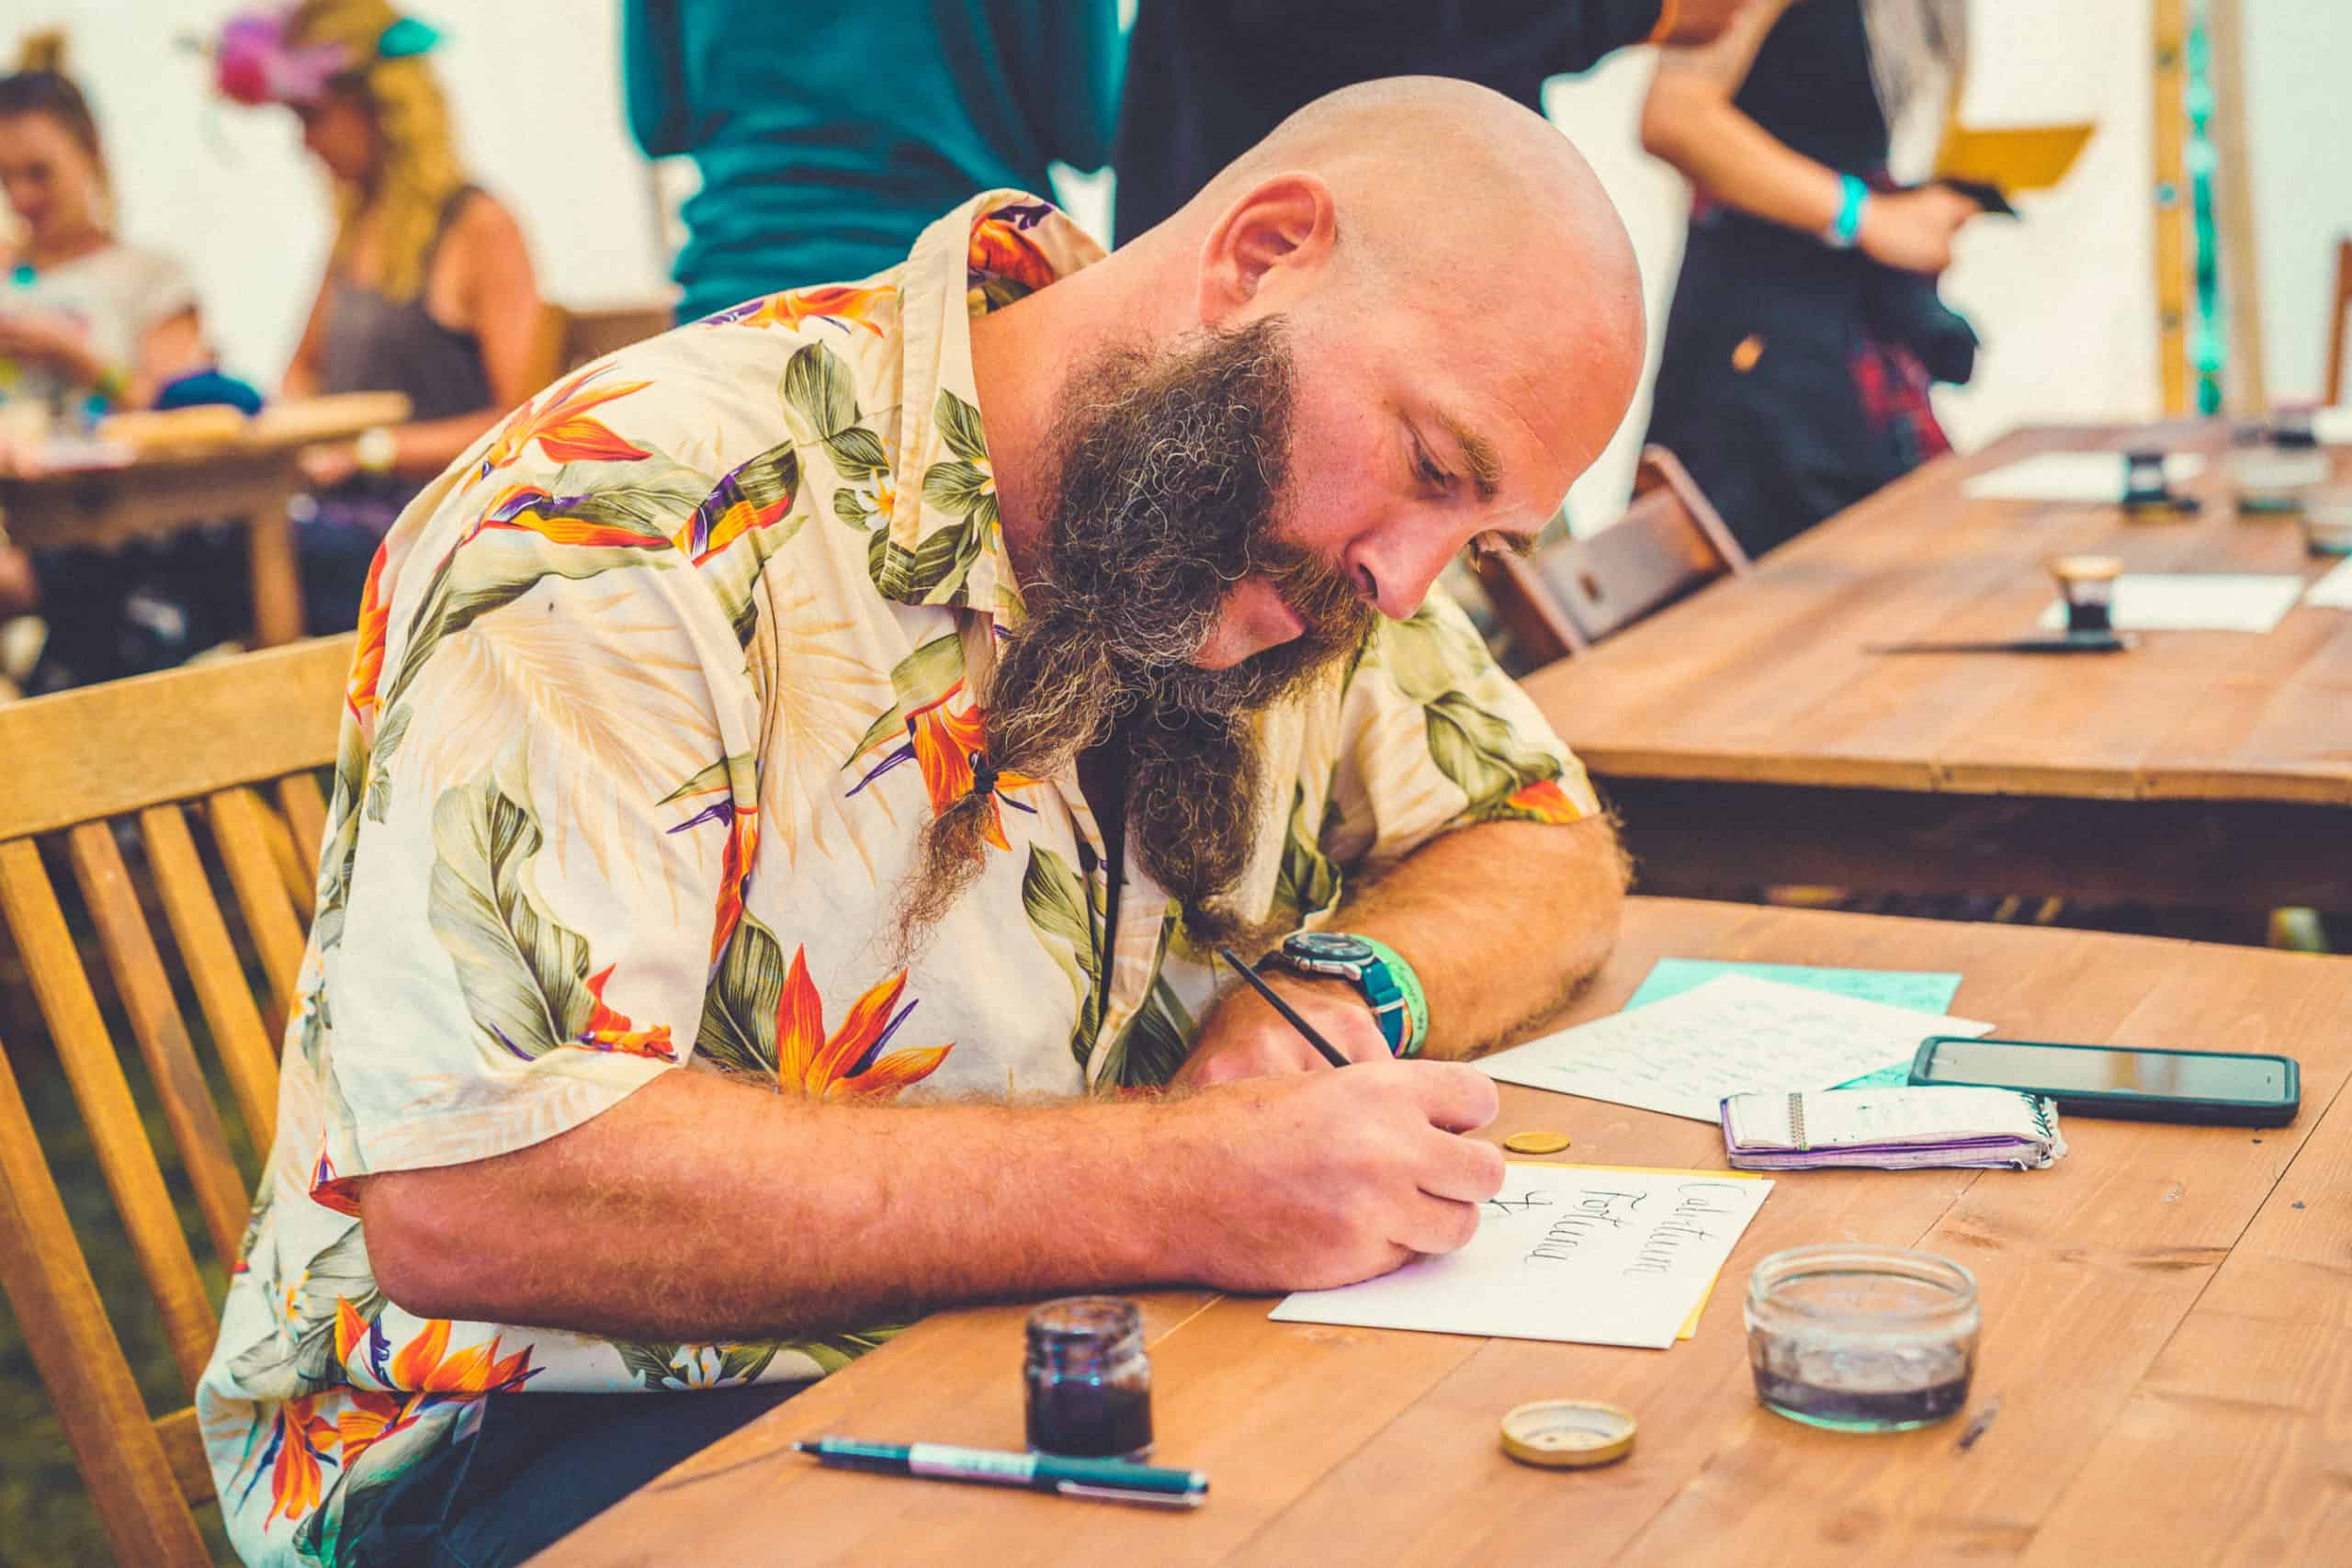 A bearded man in a floral shirt sat down at the calligraphy activity at Camp Wildfire. A summer weekend break in a forest near London and Kent. An outdoor woodland retreat featuring adventure activities, live music, DJs, parties and camping. Half summer adventure activity camp, half music festival, for adults only.